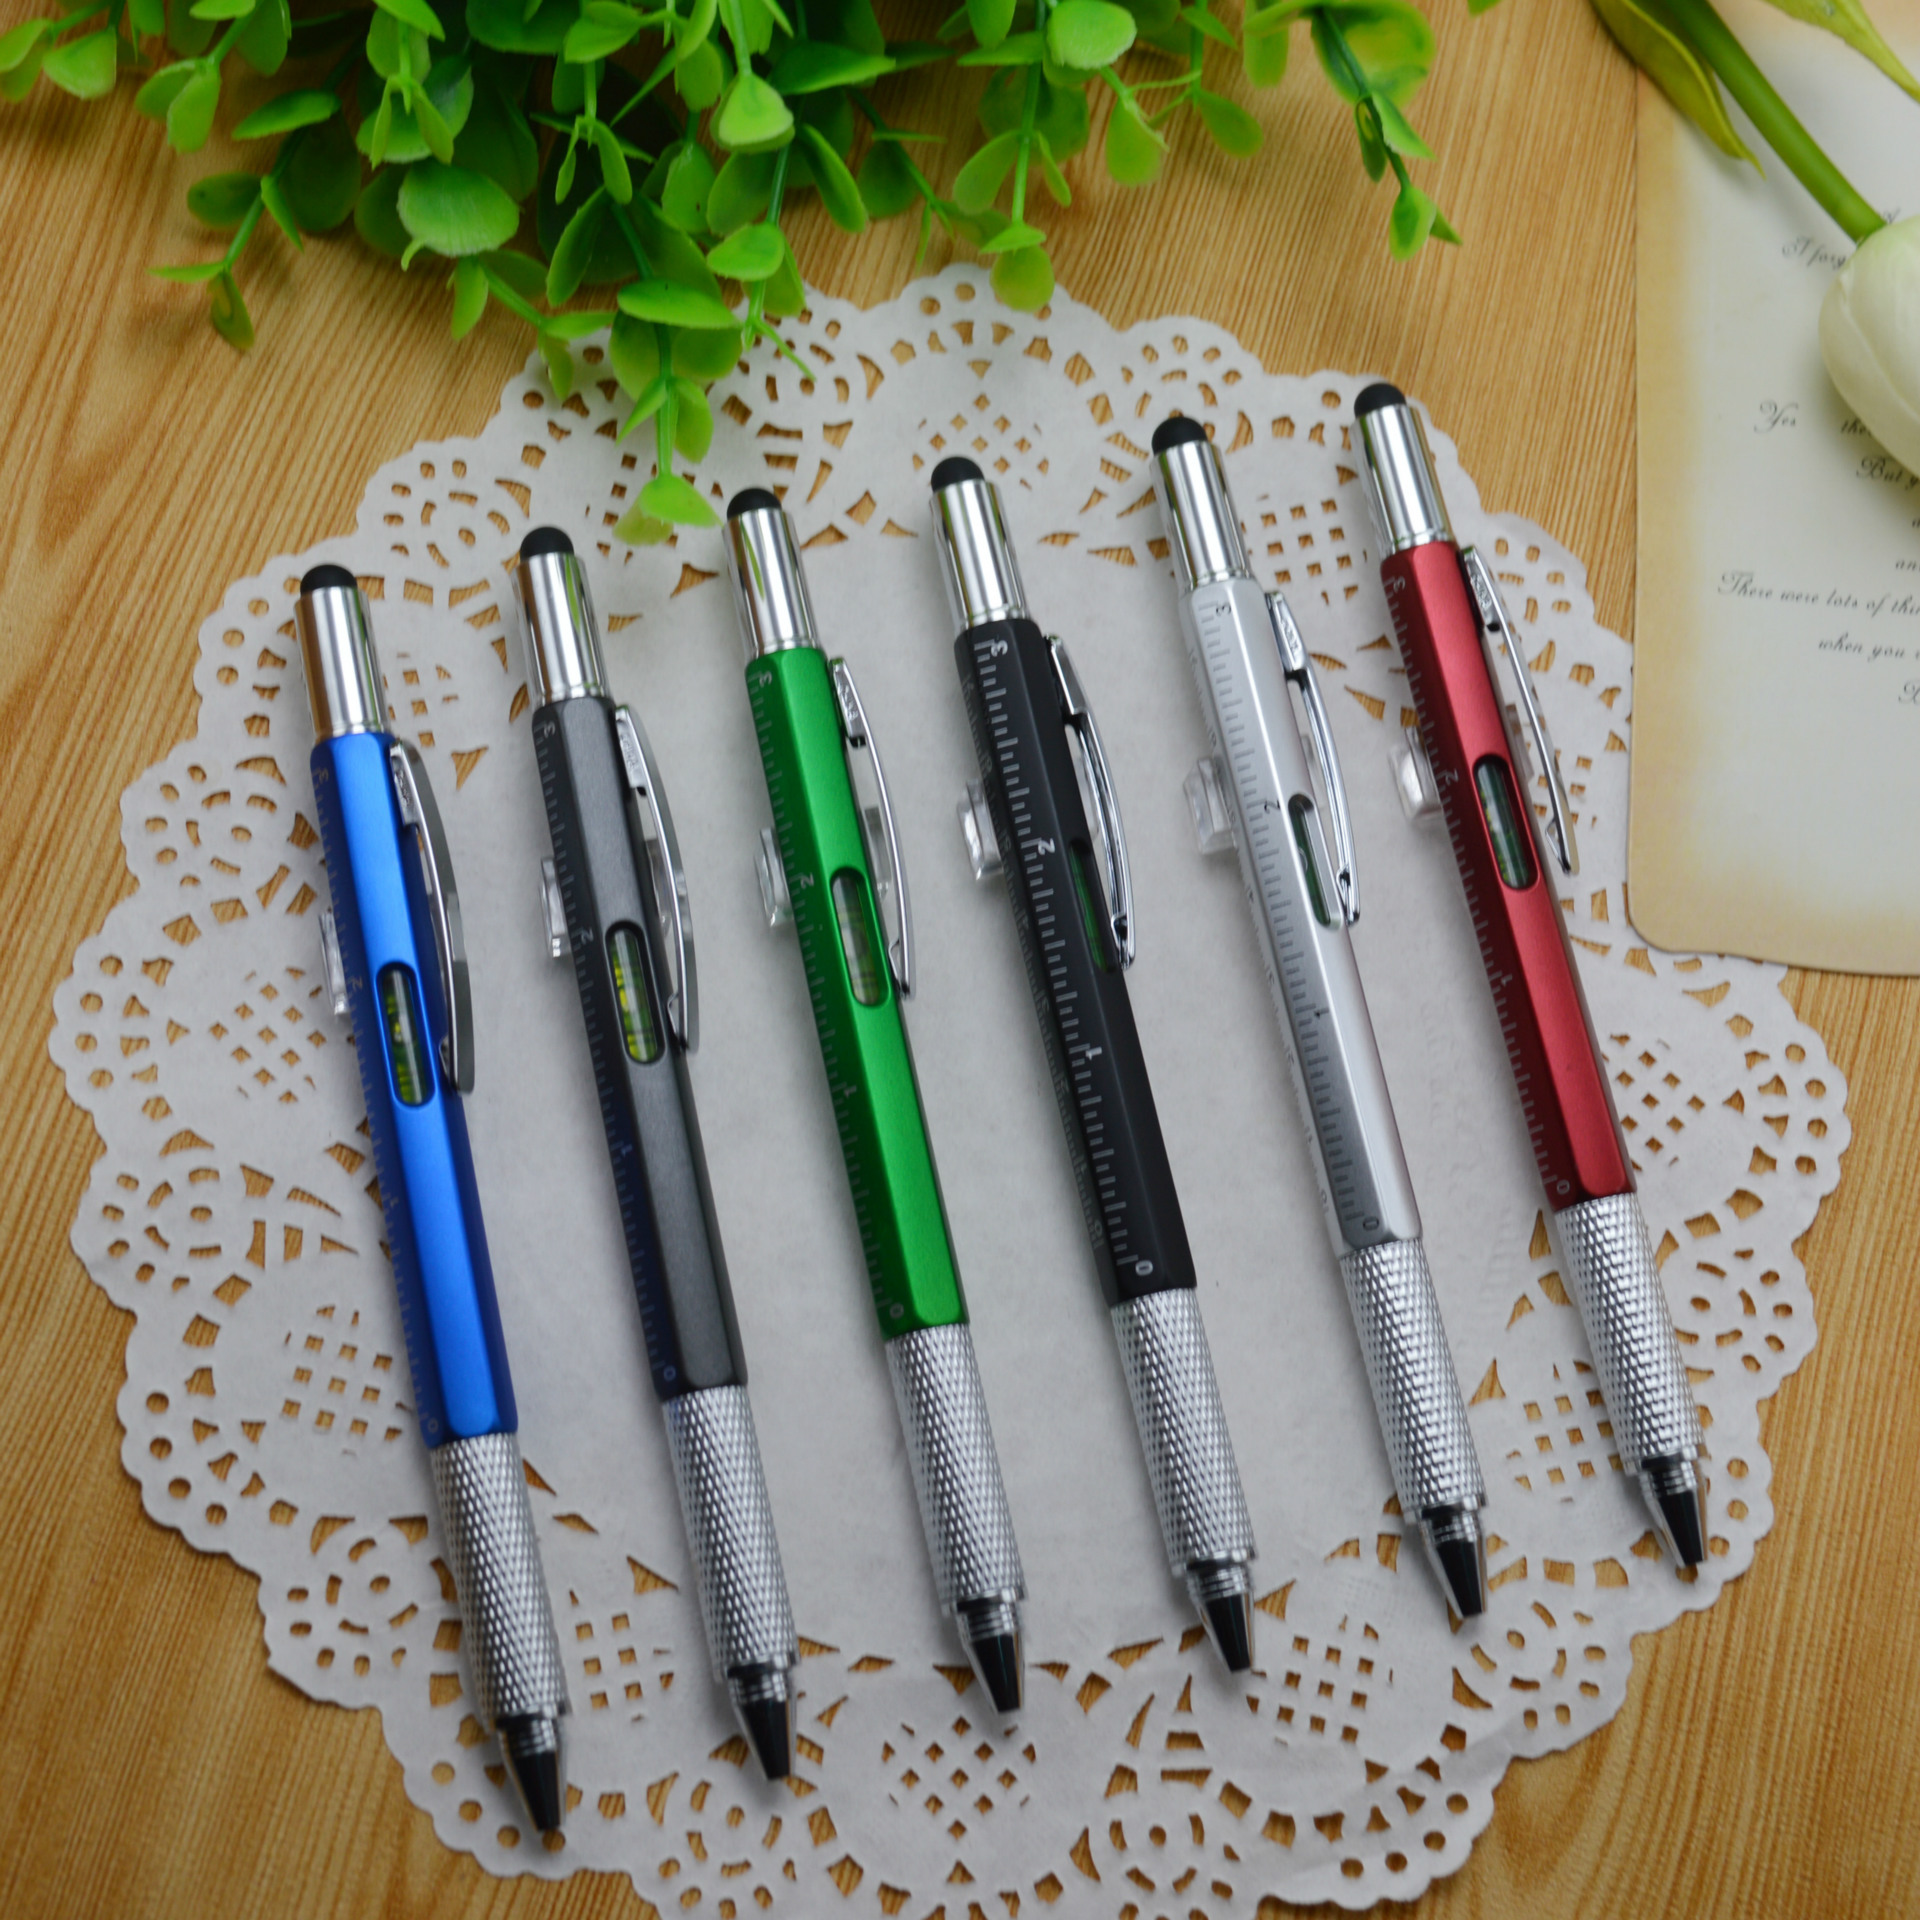 100pcs/set Multifunctional Screwdriver,ball Pen Caliper Pen Plastic Tool Pen Instrument, Touch Control Tool Screwdriver Pen free people блузка page 8